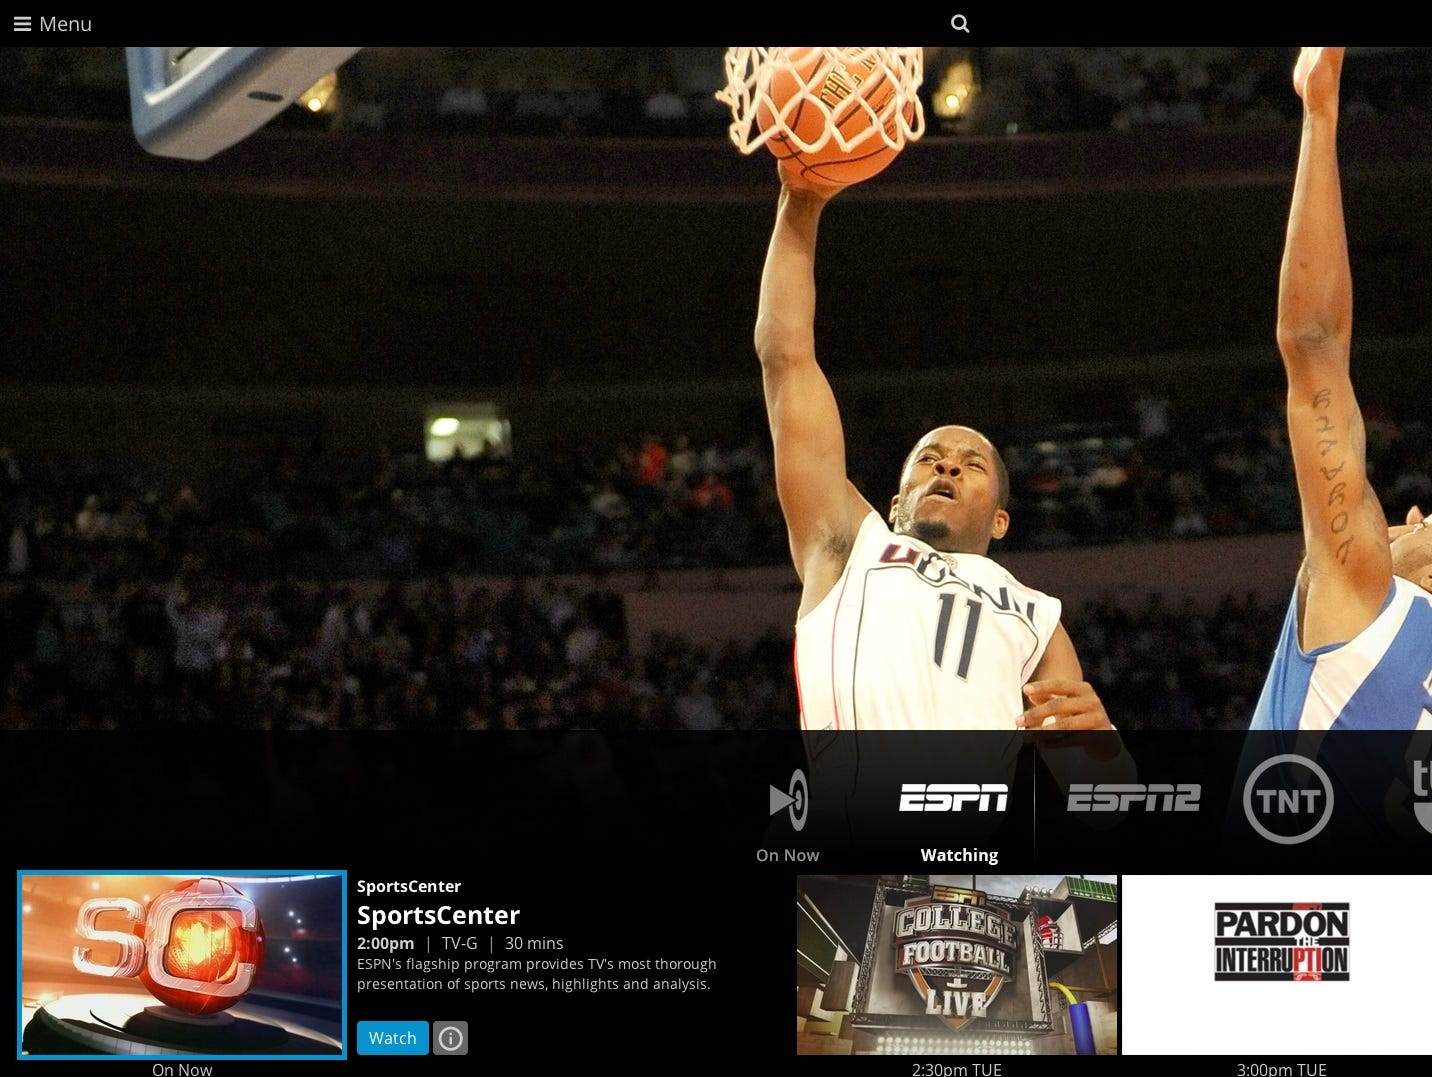 ESPN is among the channels available on Sling TV.